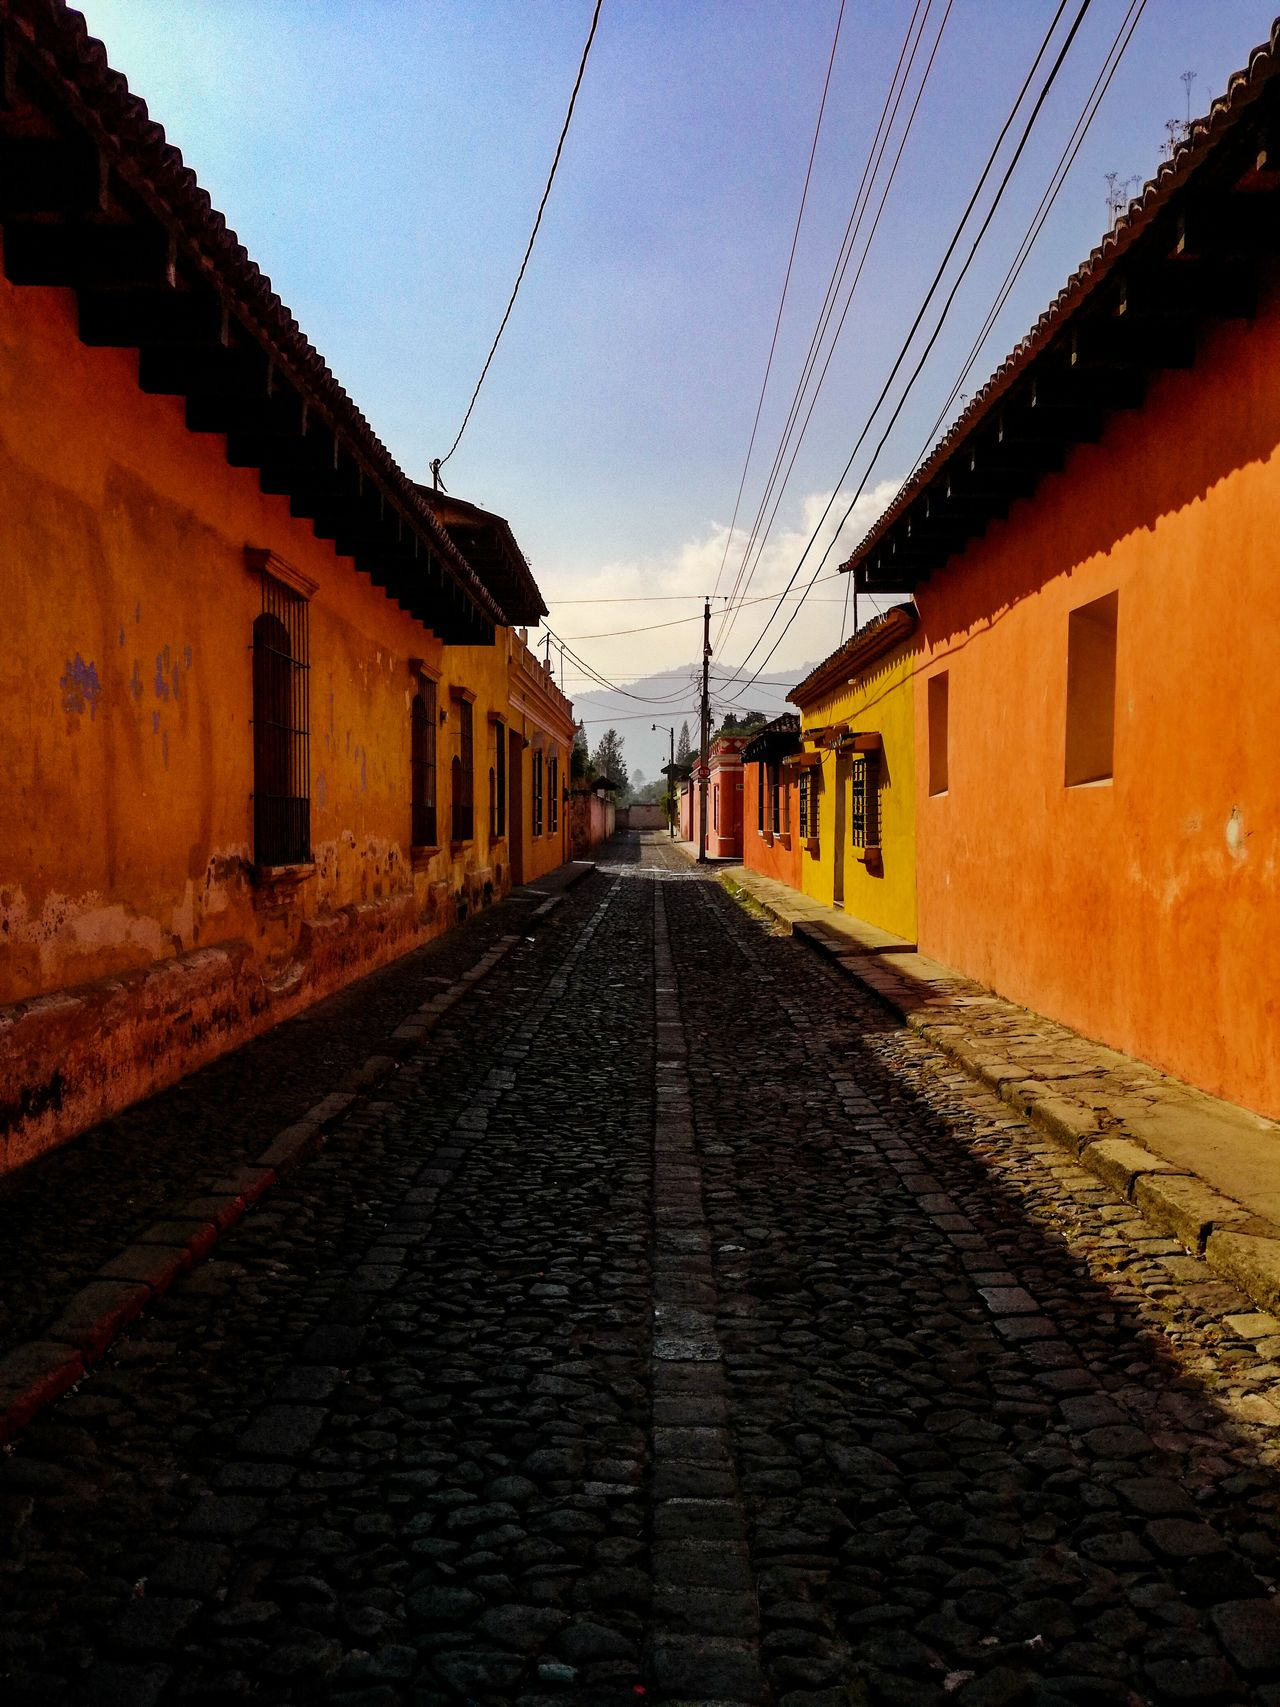 Guatemala Antigua, Guatemala Colonial Architecture Heritage Site Travel Outdoors Architecture Building Exterior No People Roadsidephotography The Secret Spaces Colonial Style TCPM The Street Photographer - 2017 EyeEm Awards The Architect - 2017 EyeEm Awards The Street Photographer - 2017 EyeEm Awards Place Of Heart